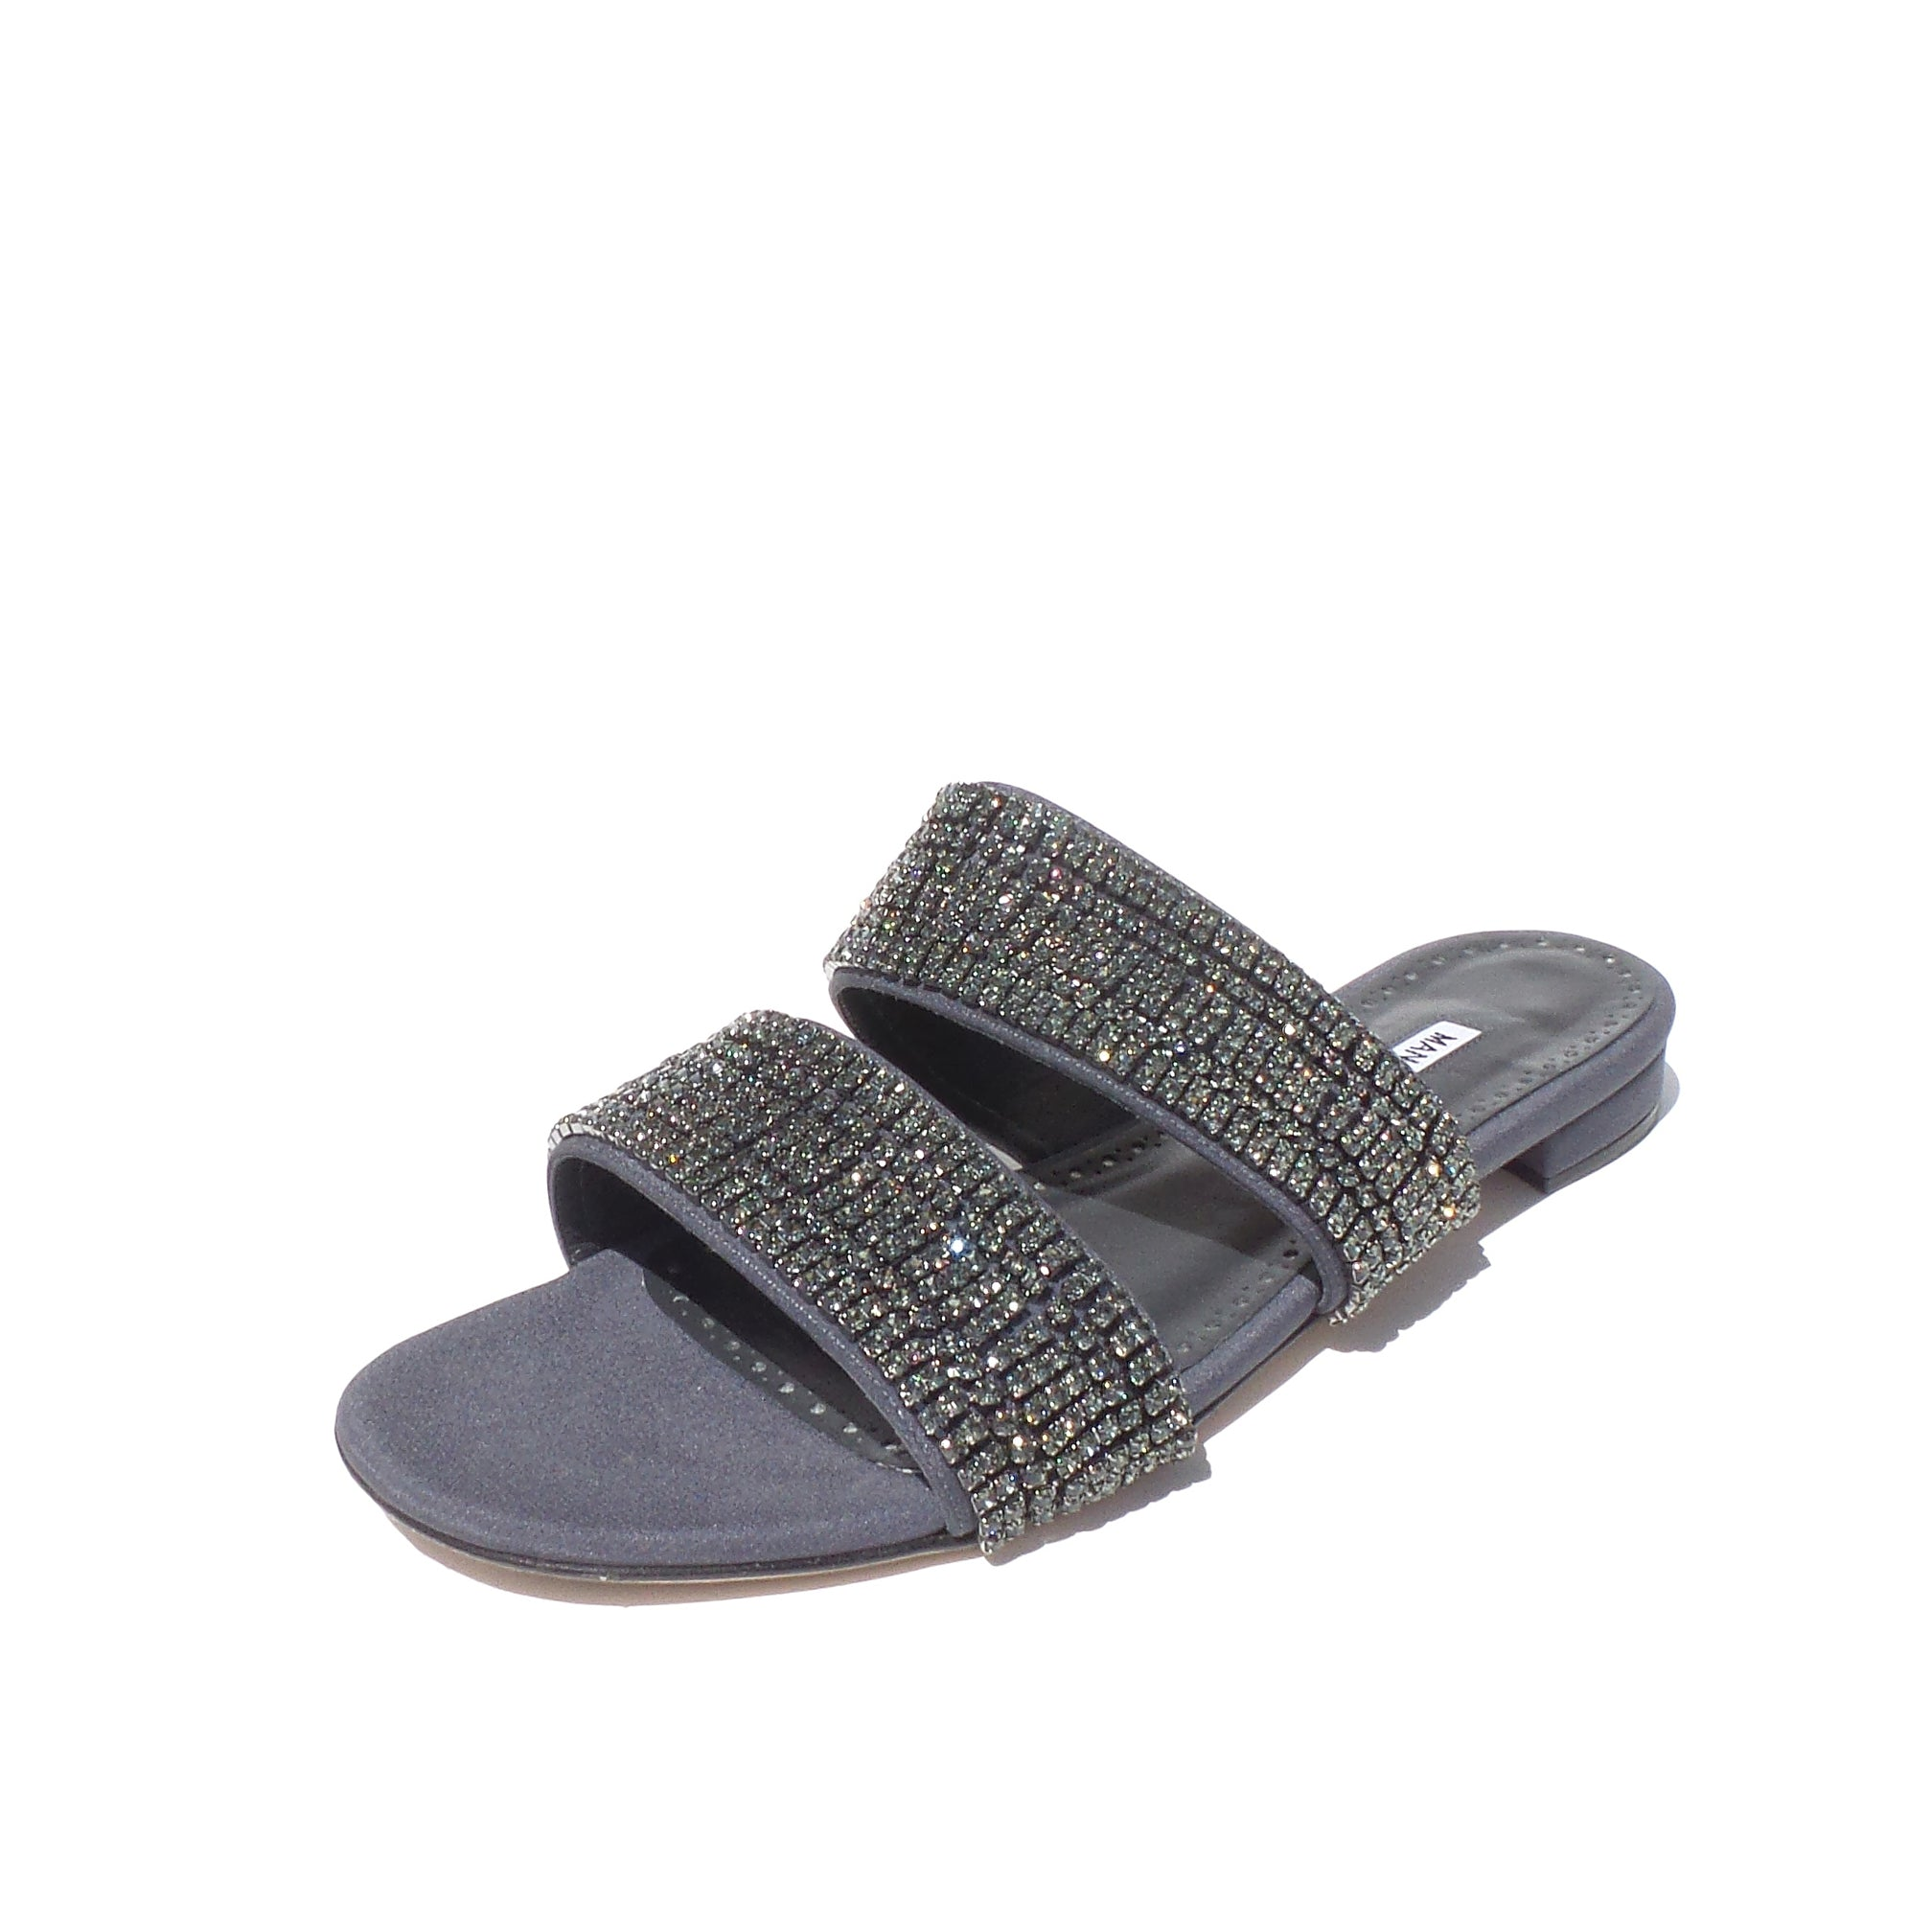 8025f602abd $1195 MANOLO BLAHNIK Bulgocri Gray Satin Crystal Embellished Slide Sandals  38 EC